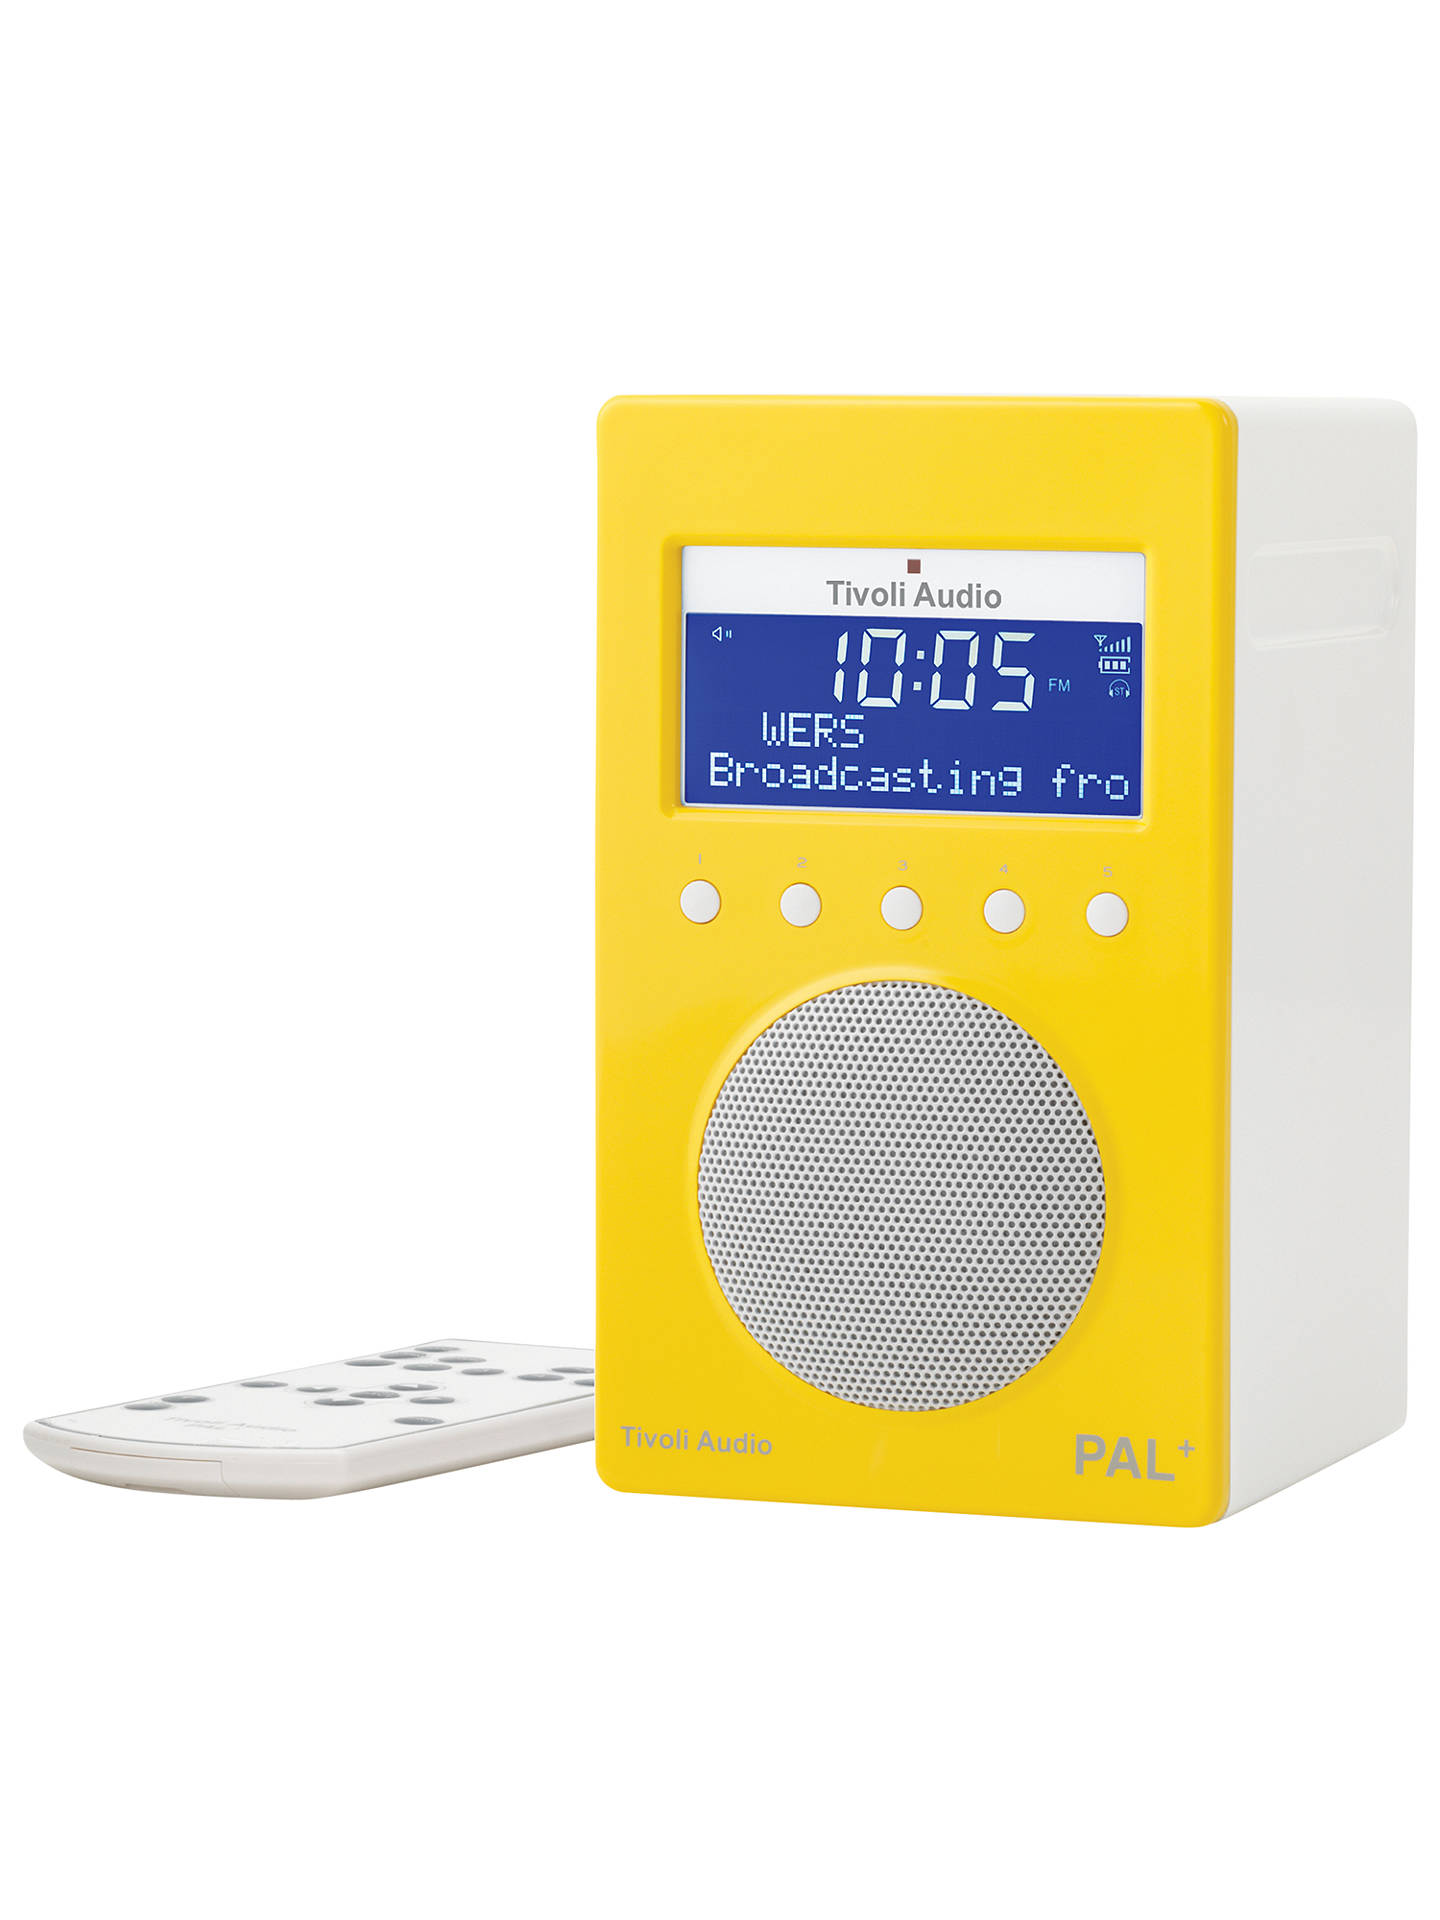 Buy Tivoli Audio PAL+ DAB/FM Portable Radio, Yellow Online at johnlewis.com